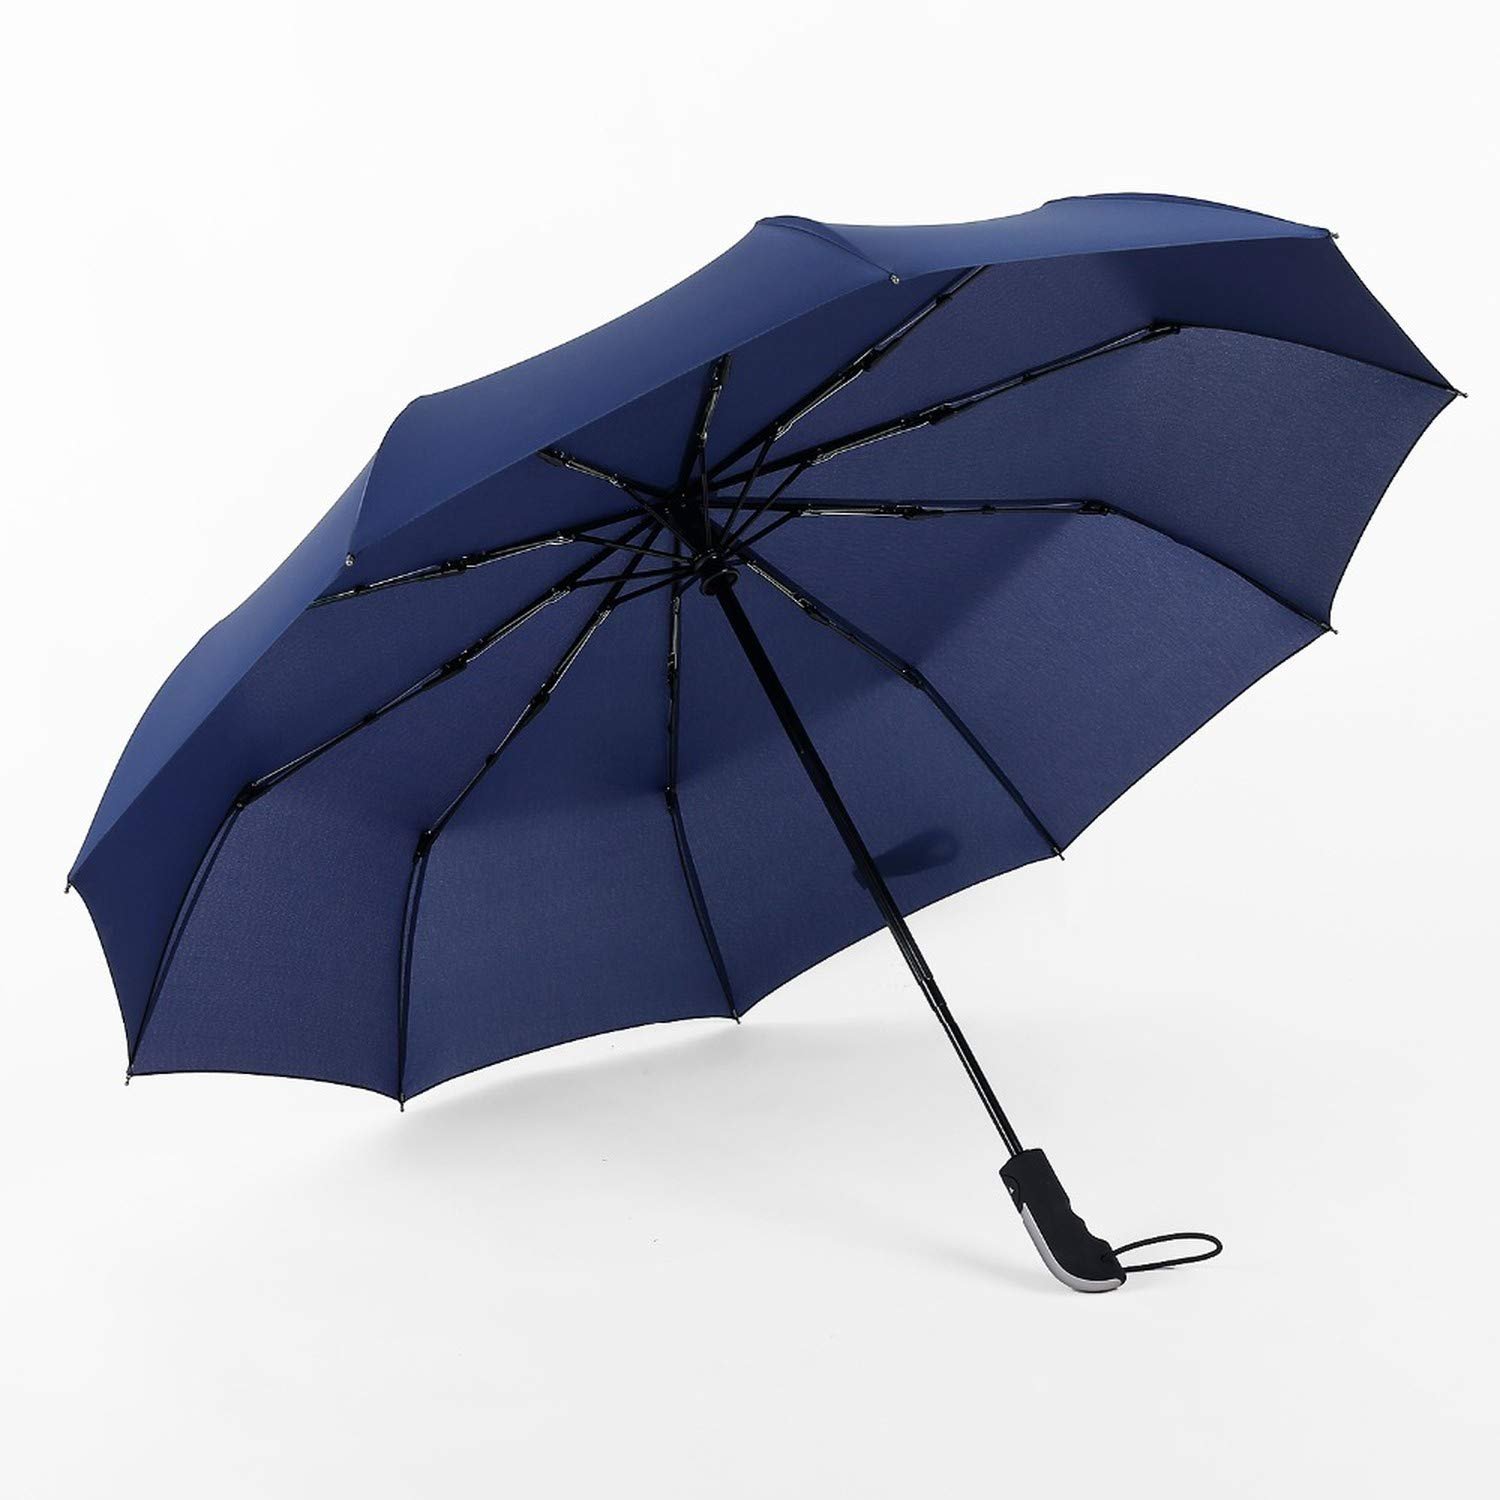 JESSE KAMM New Fully-automatic Three Folding Male Commercial Compact Large Strong Frame Windproof 10Ribs Gentle Black Umbrellas,5 piece random color,Russian Federation Fantastic-Journey SB-122